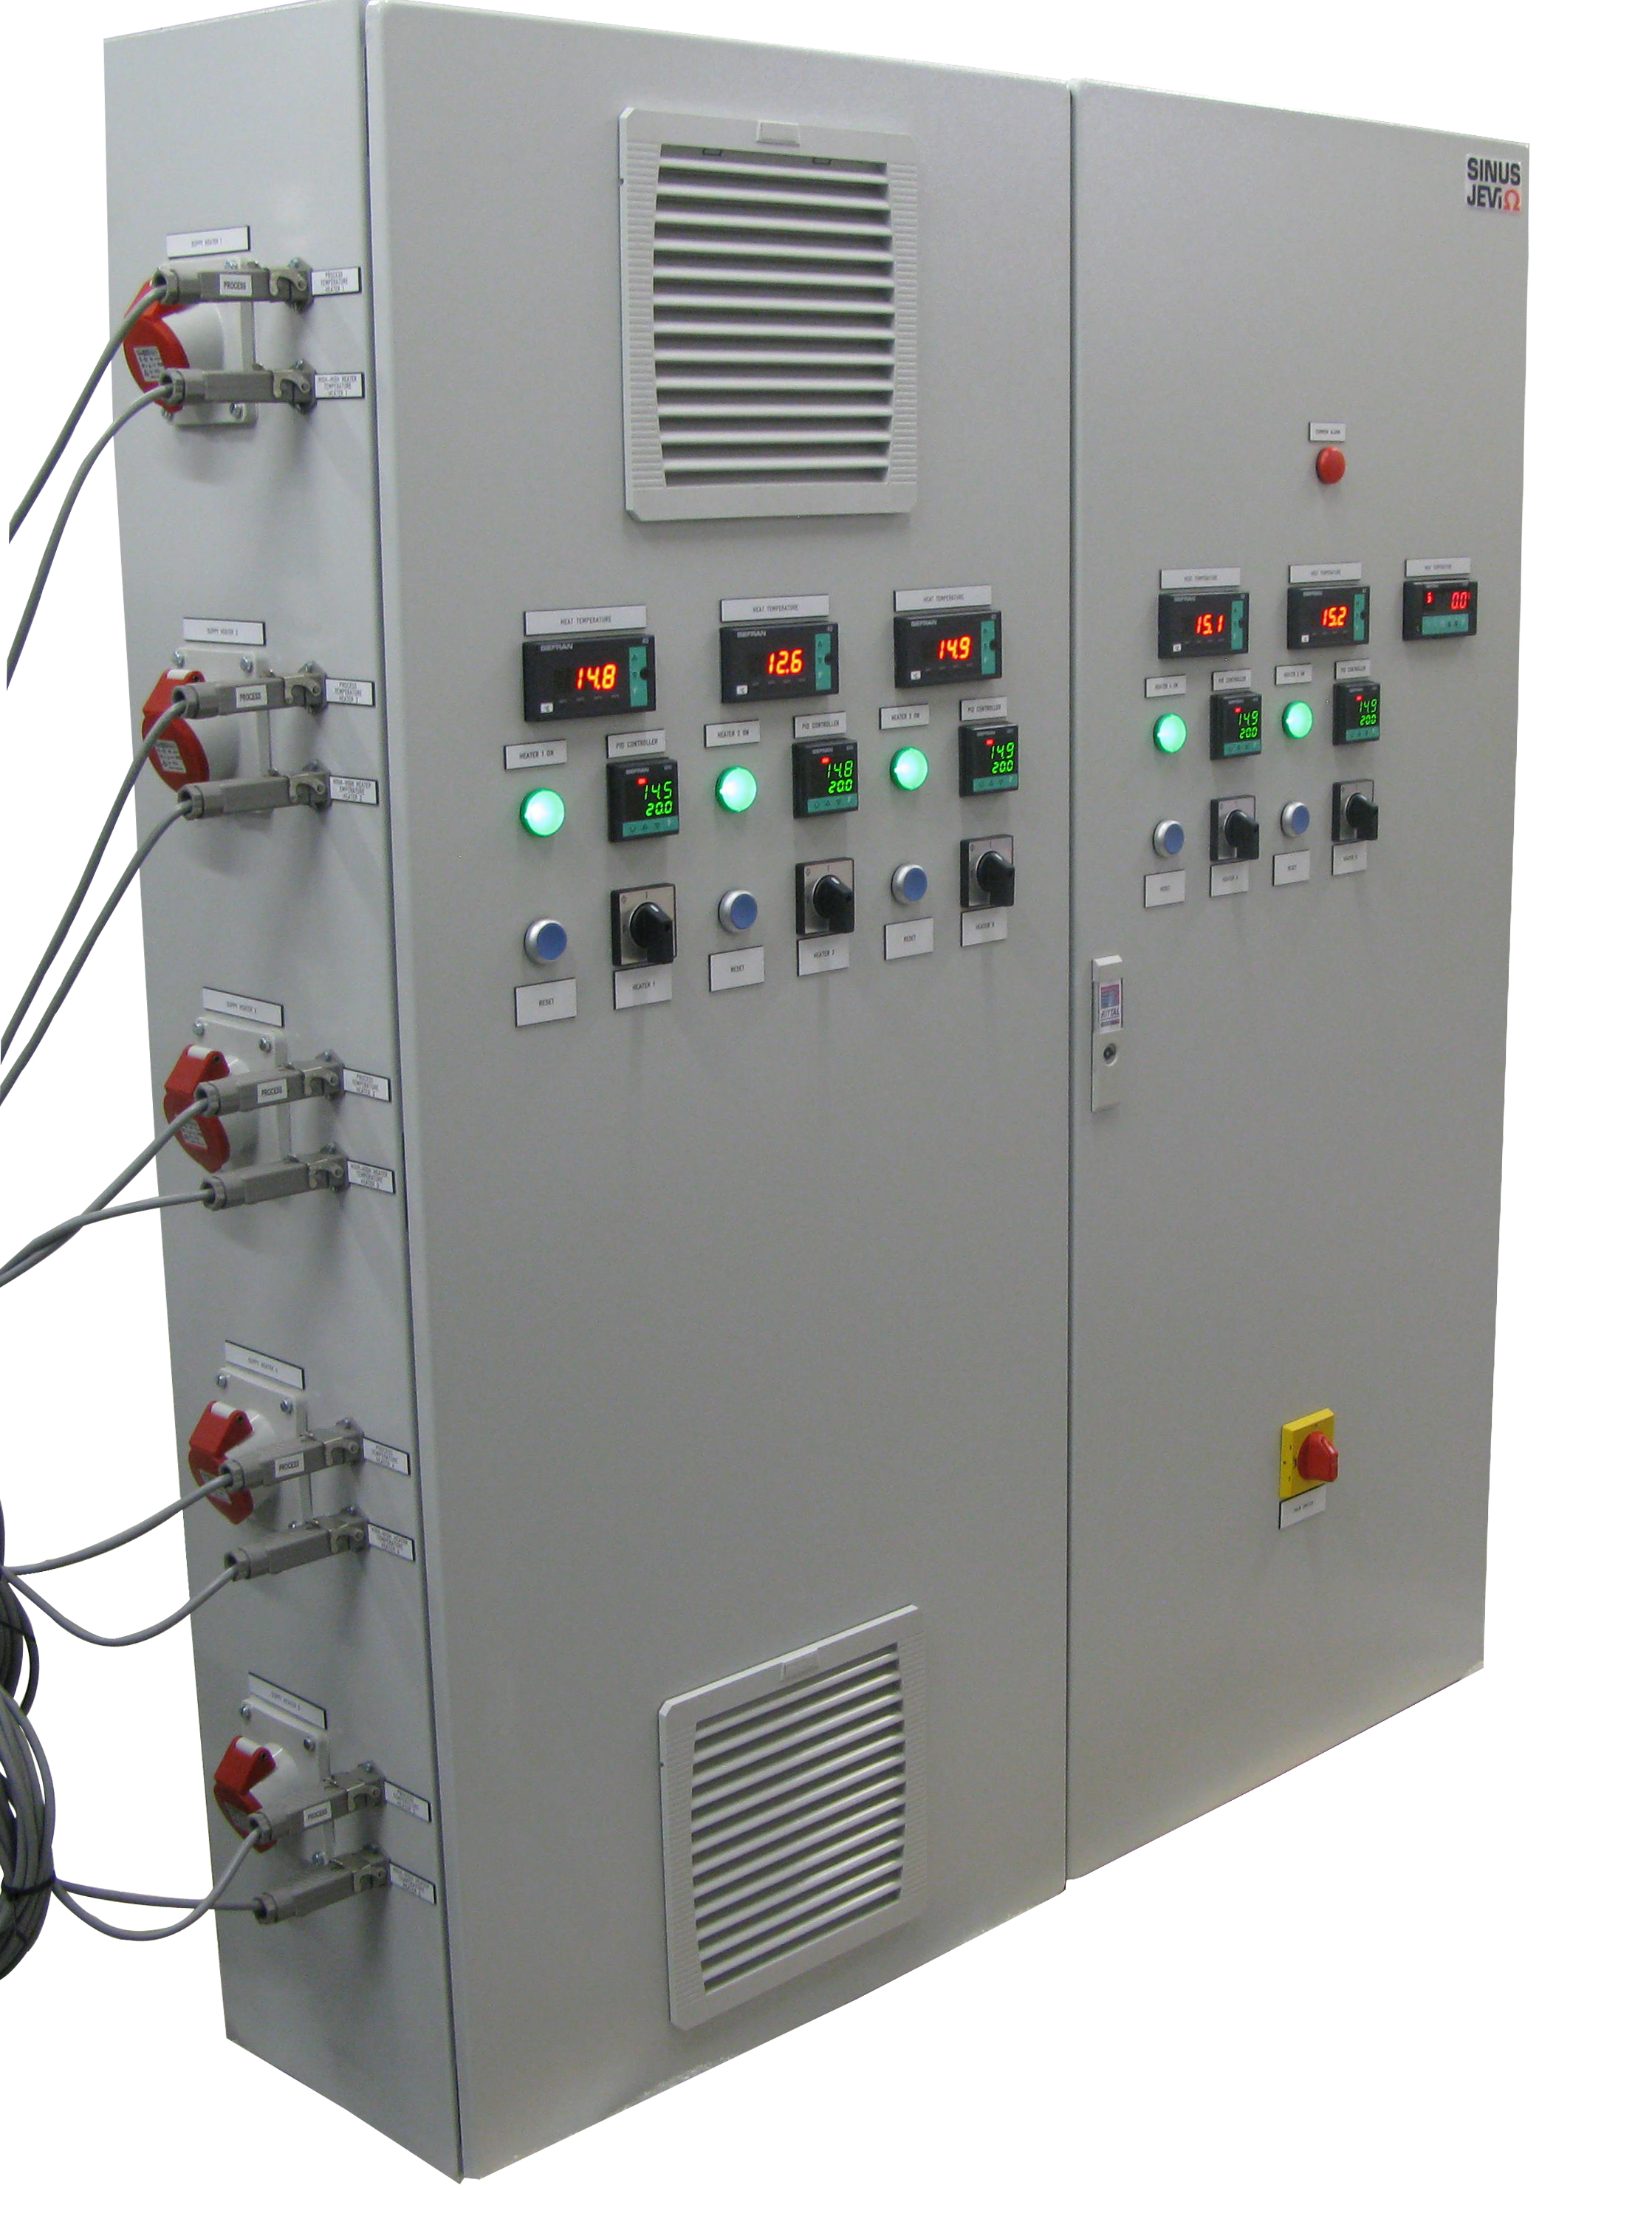 control panel Air conditioner control panel, wholesale various high quality air conditioner control panel products from global air conditioner control panel suppliers and air conditioner control panel factory,importer,exporter at alibabacom.